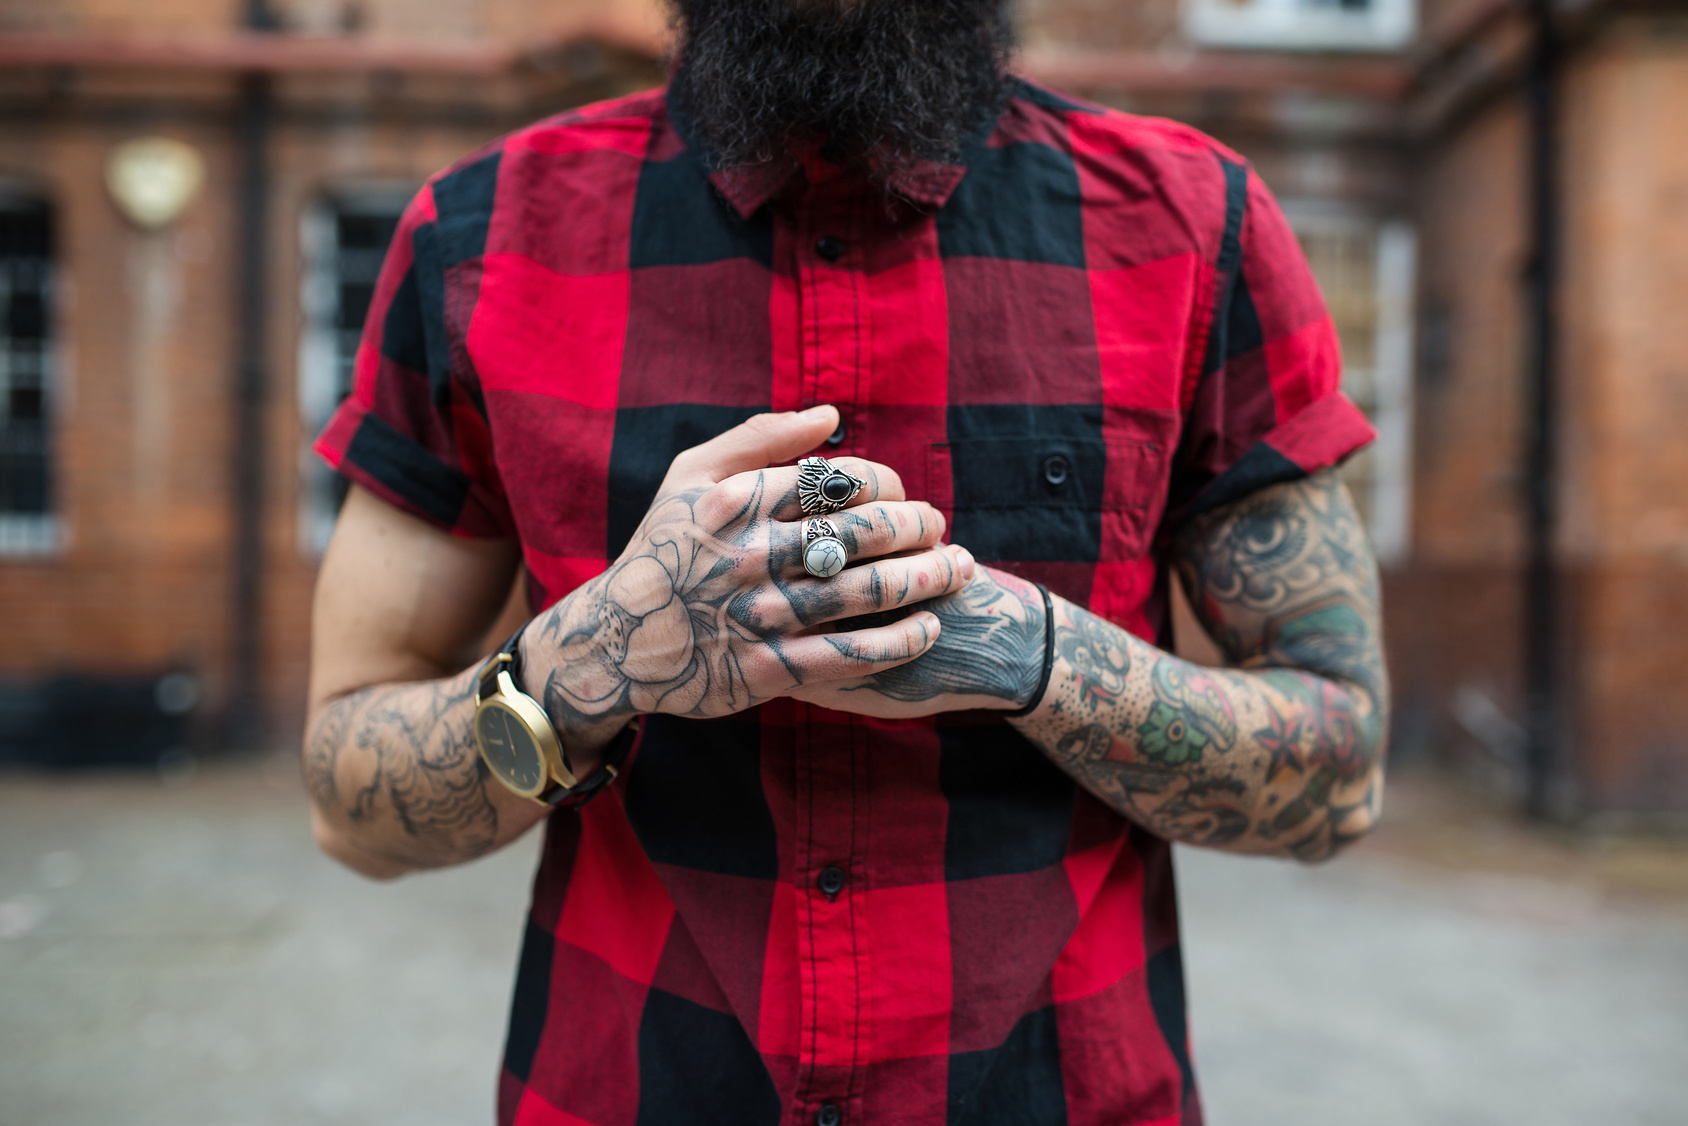 Checked shirt. Check.